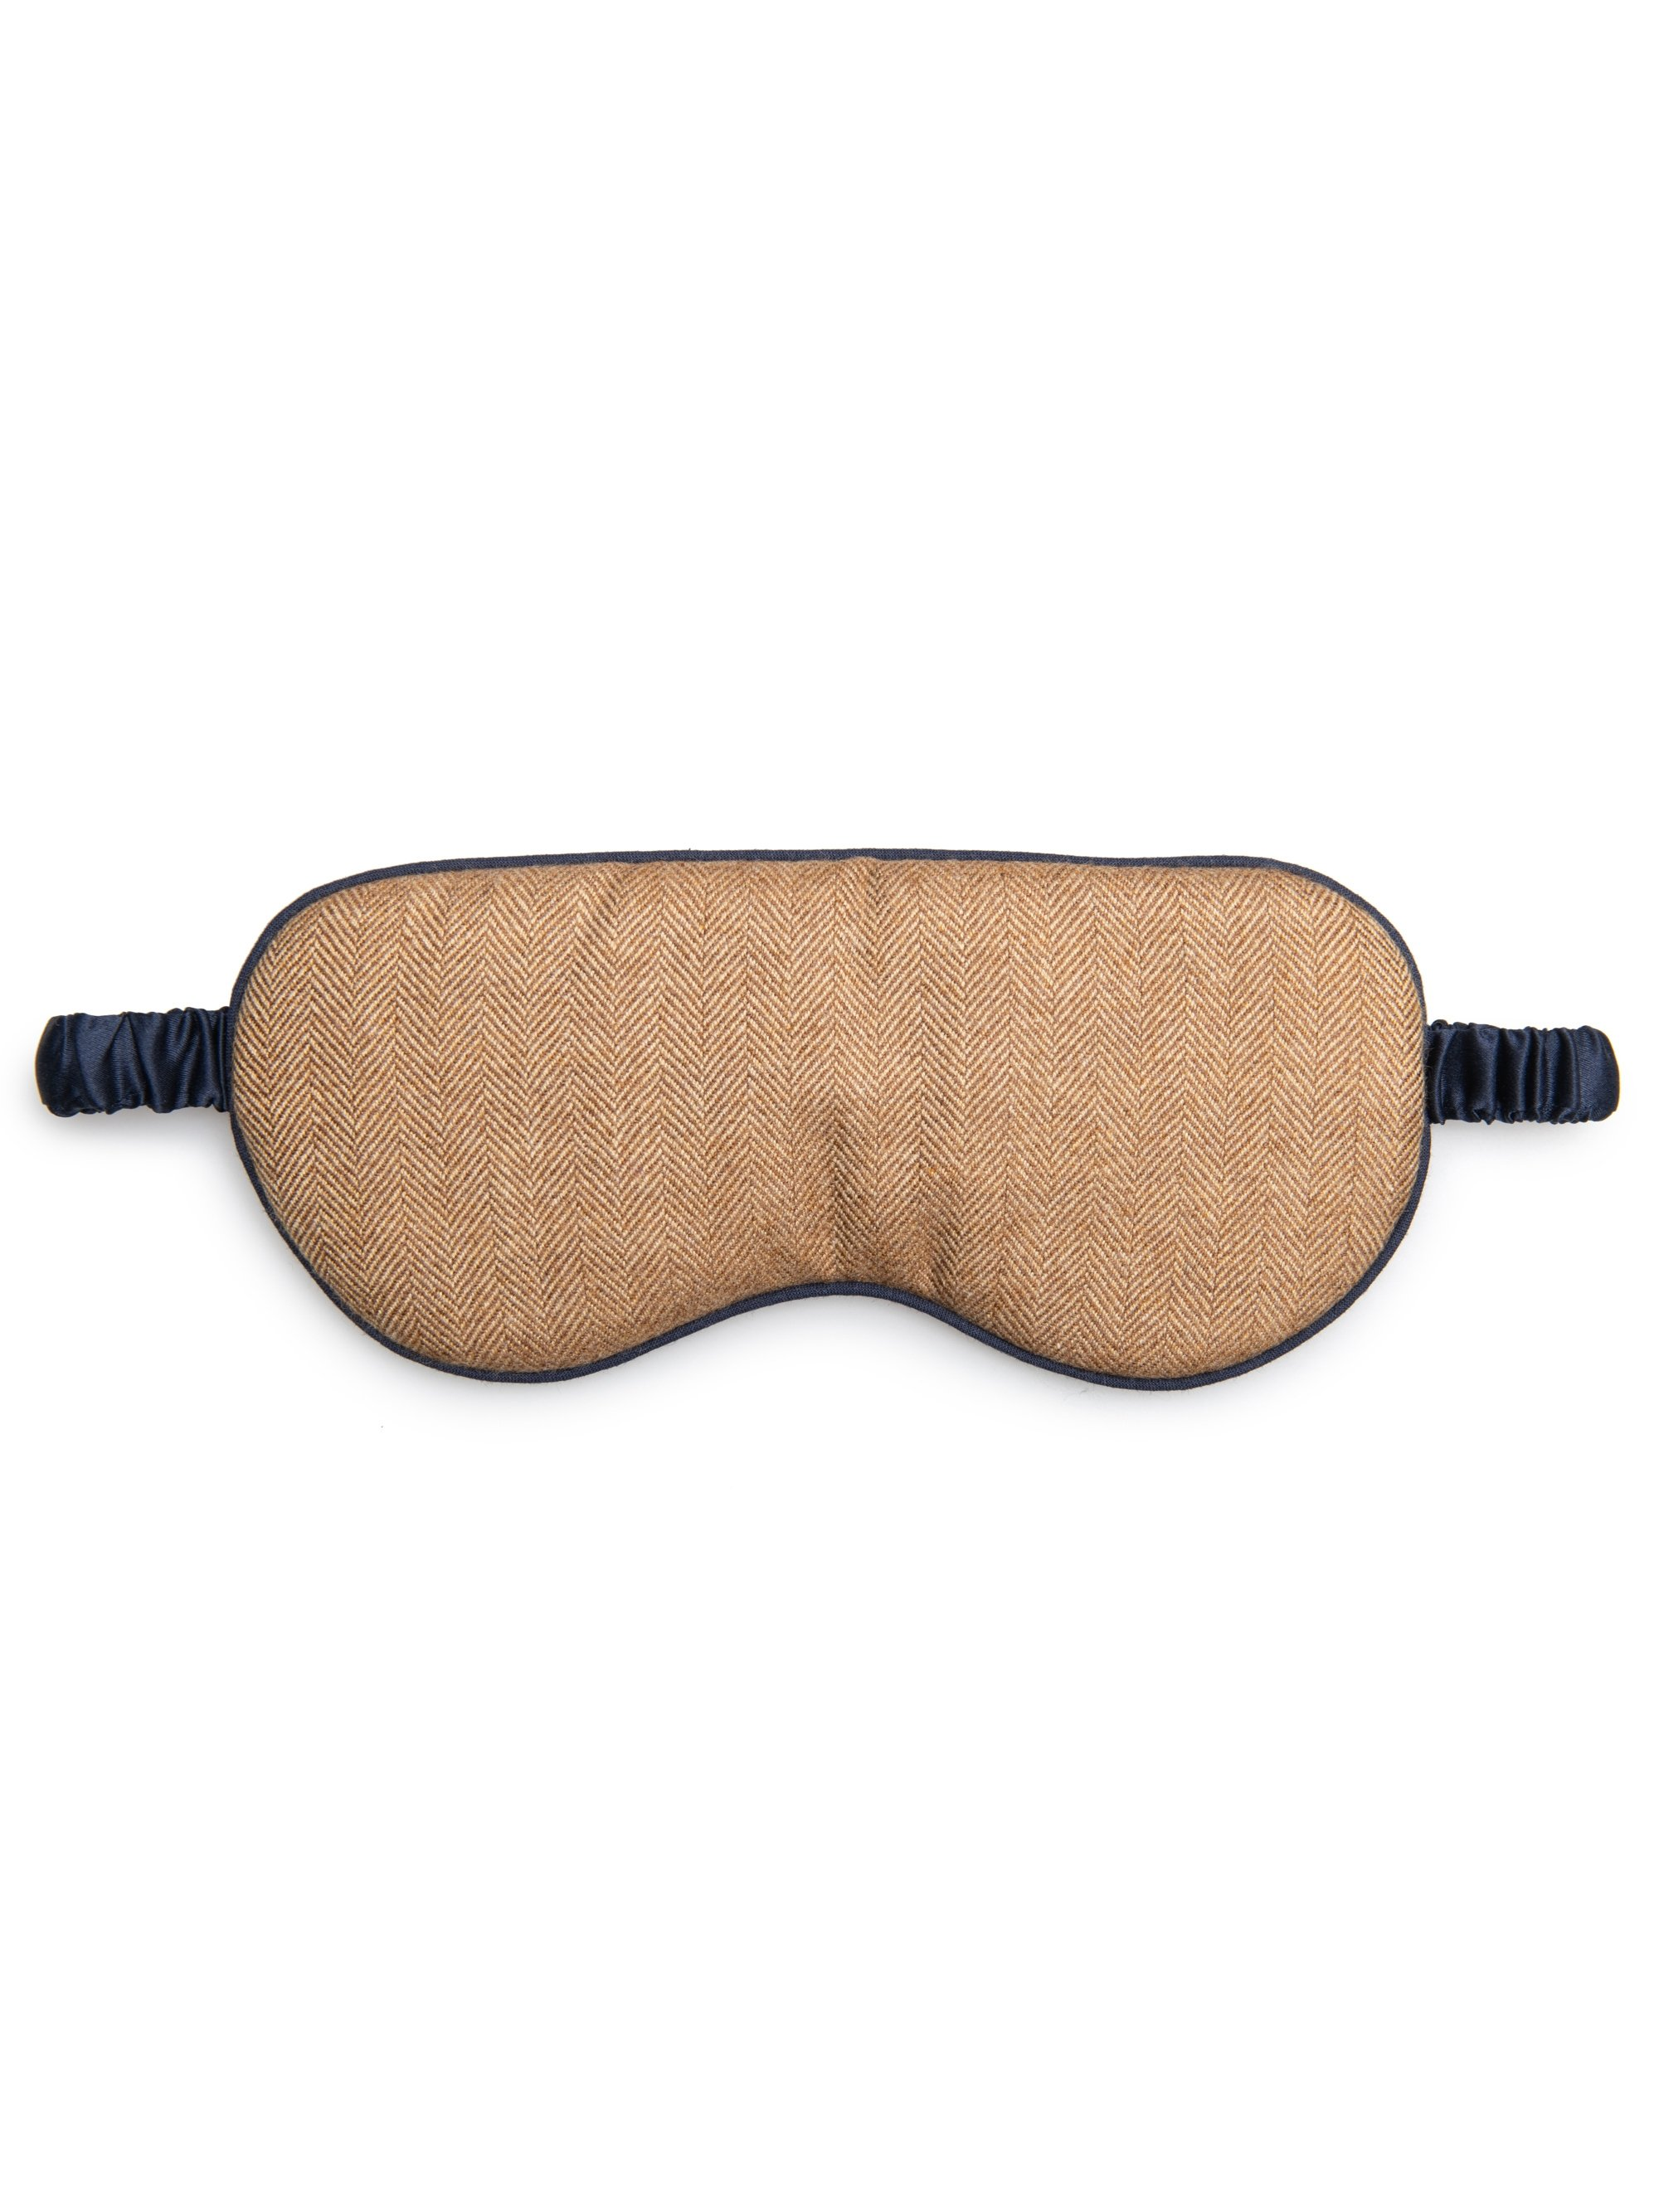 Eye Mask Duke Pure Cashmere Camel